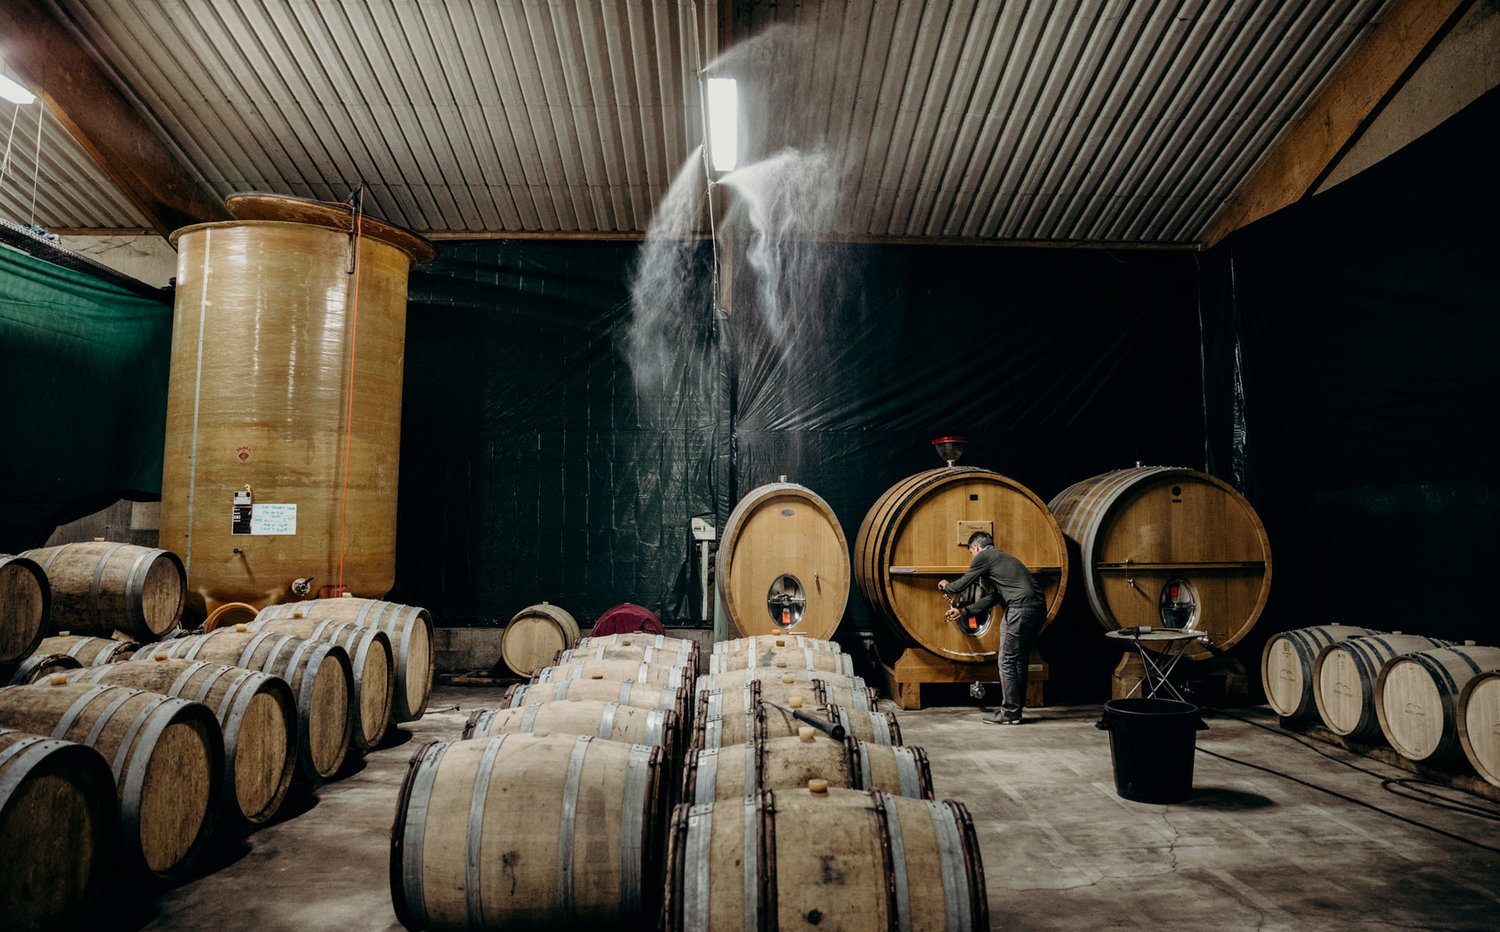 Brian McClintic in the Winery